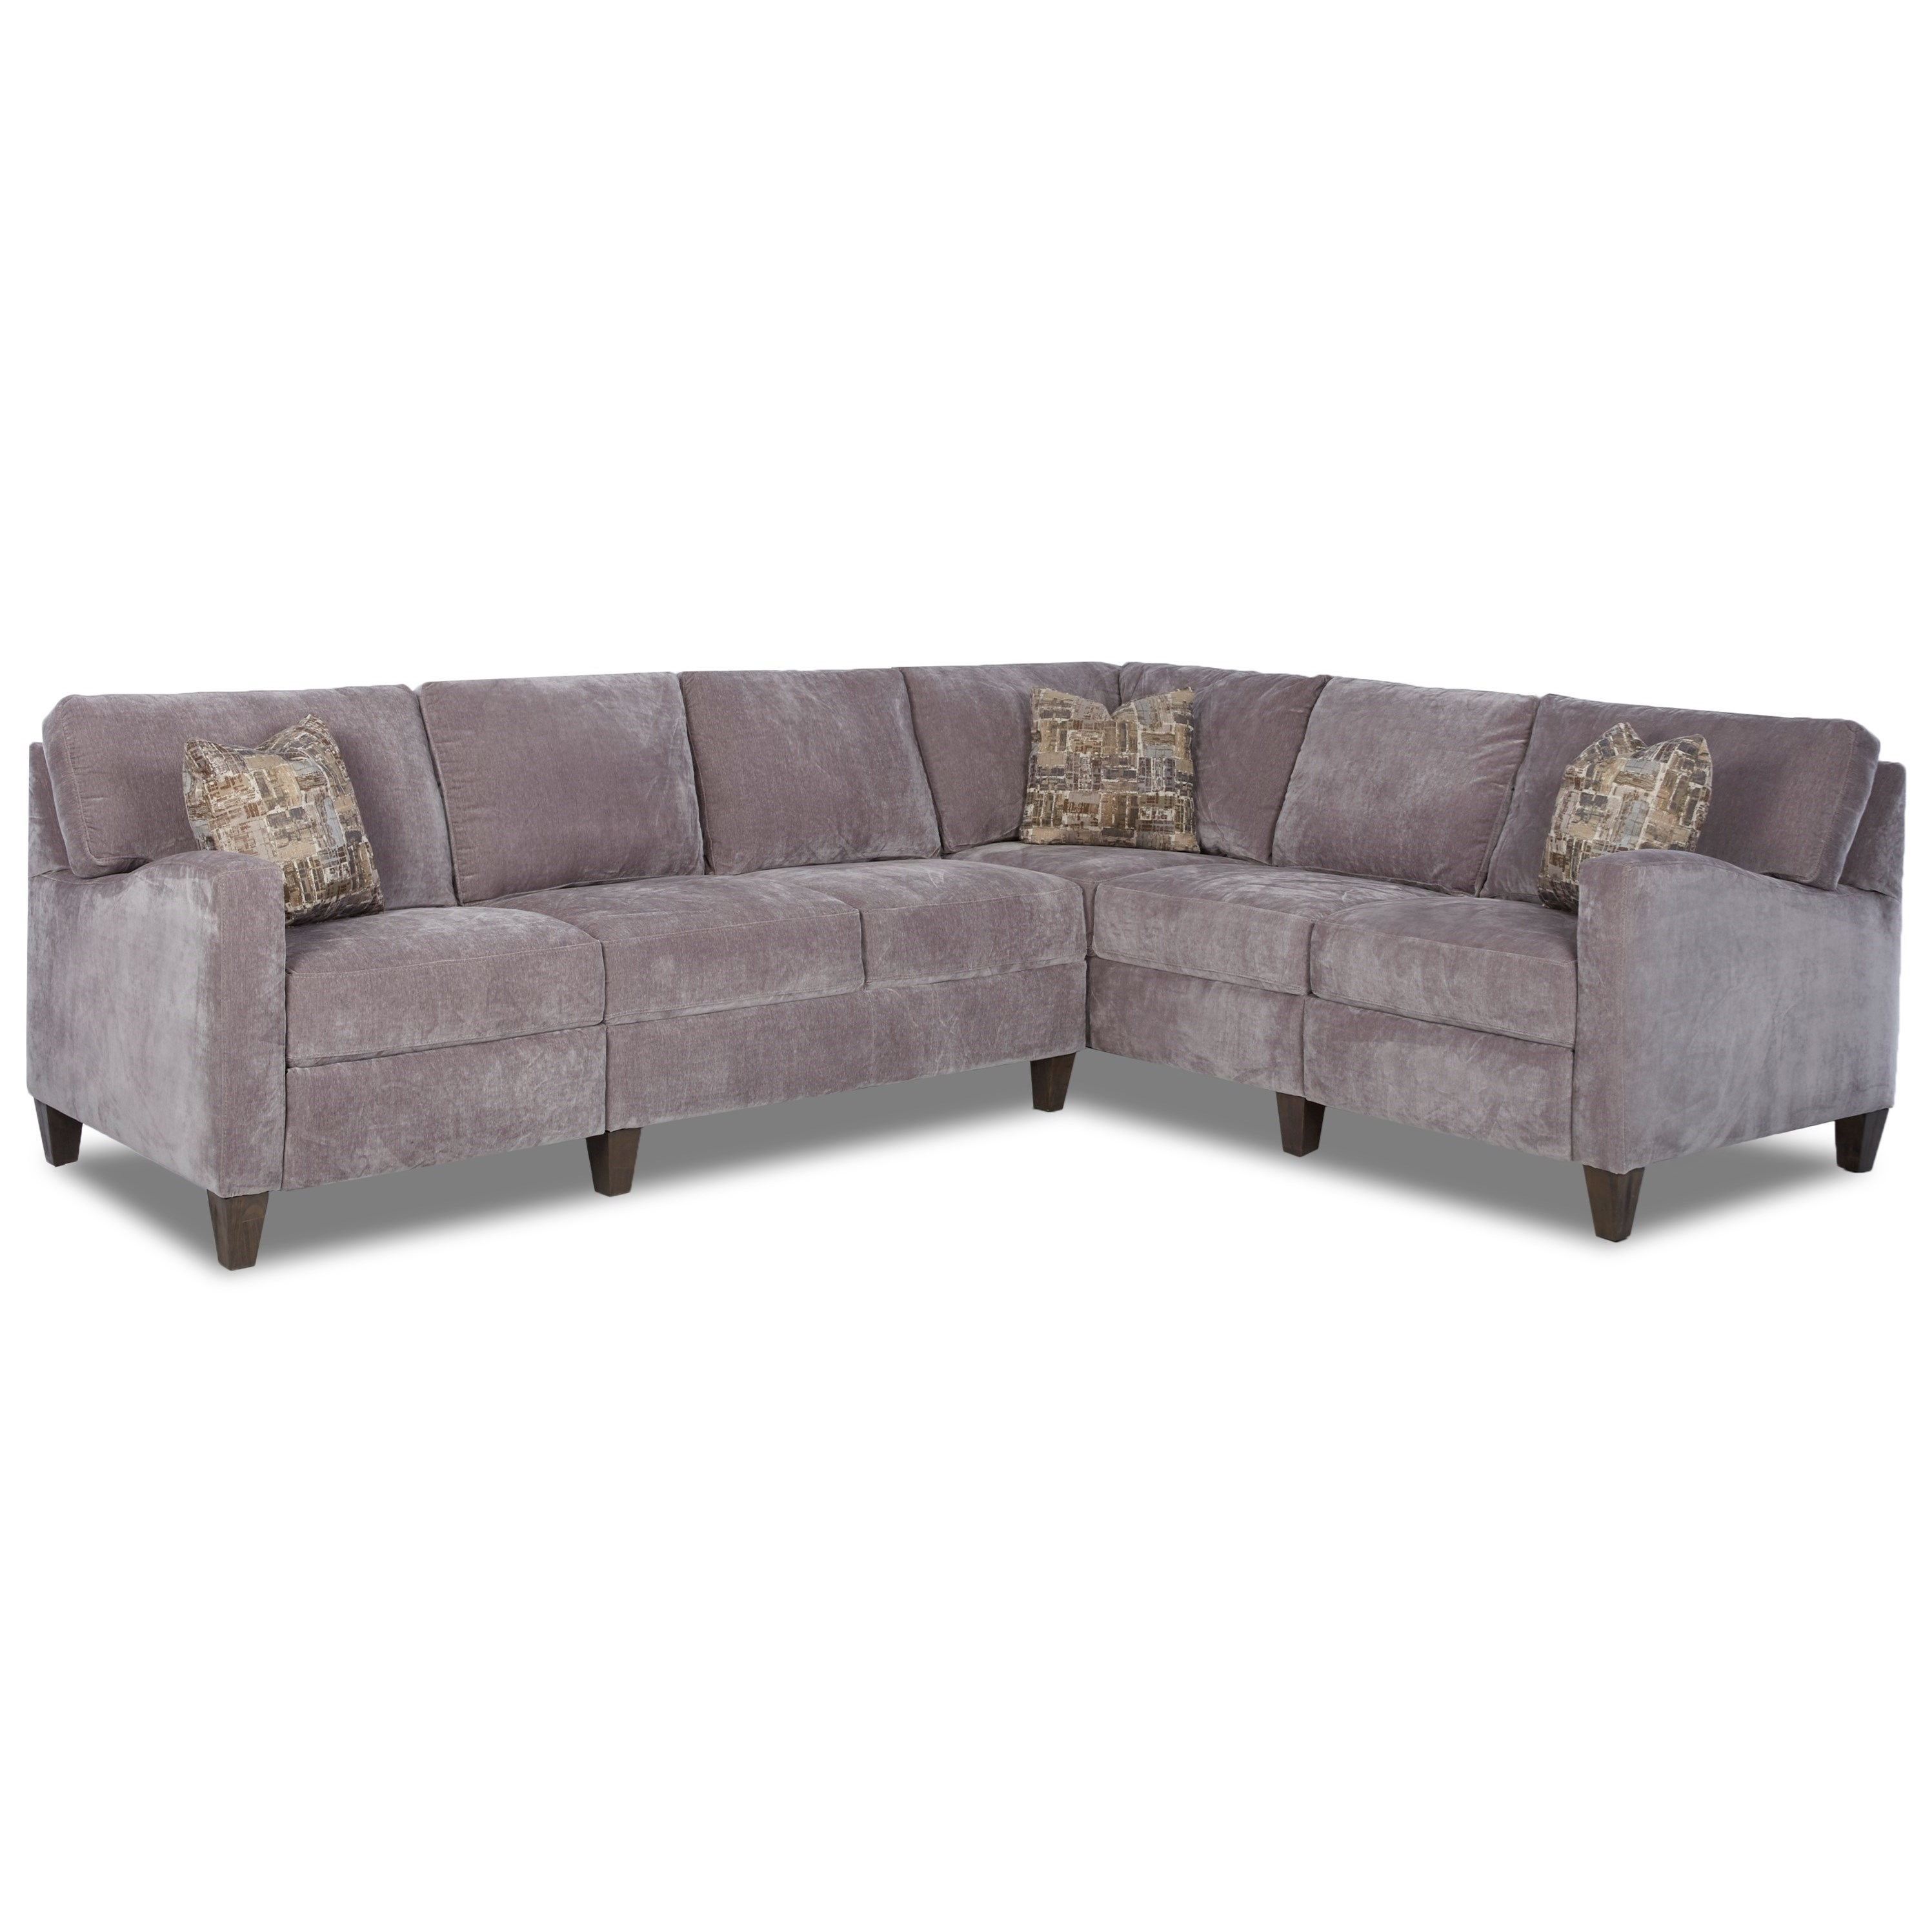 klaussner grand power reclining sofa bari corner storage bed colleen hybrid sectional with raf